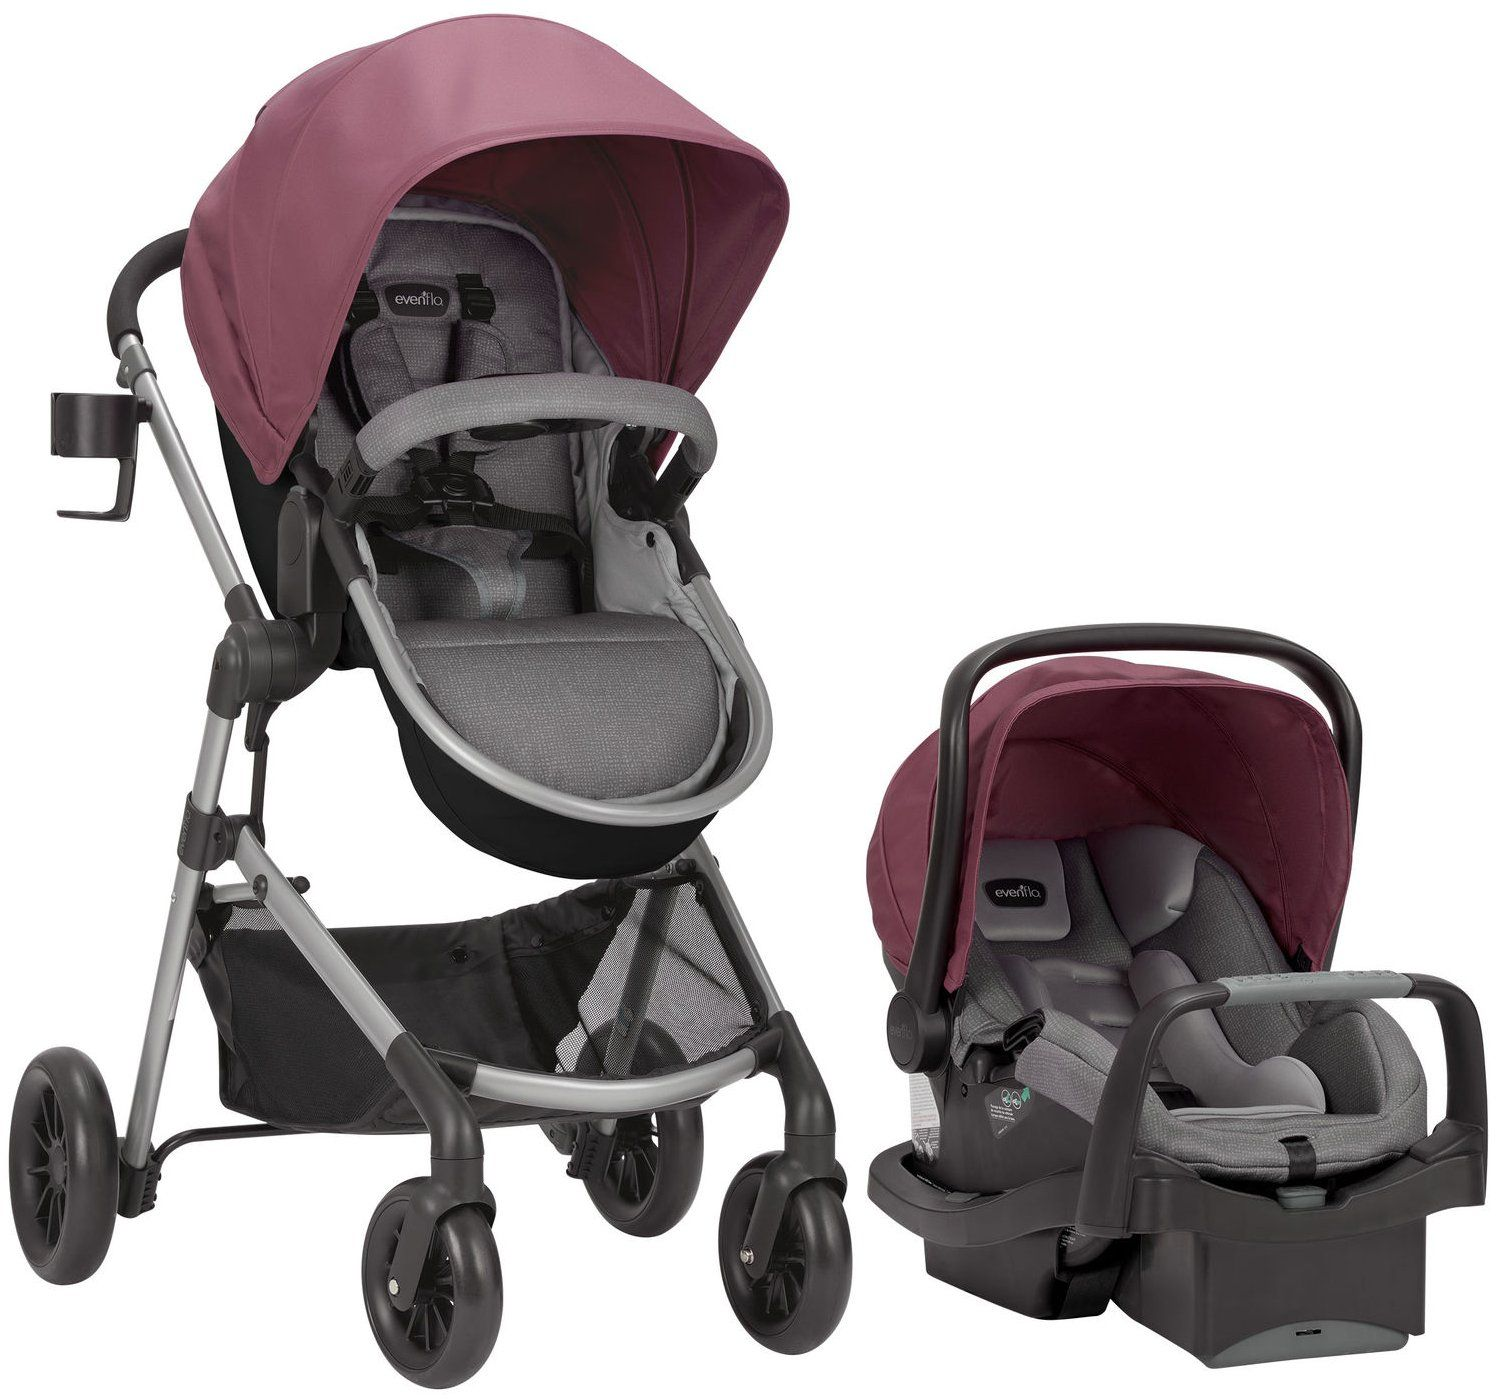 Maxi-cosi Adorra Travel System - Graphic Flower Evenflo Pivot Modular Travel System W Safemax Dusty Rose